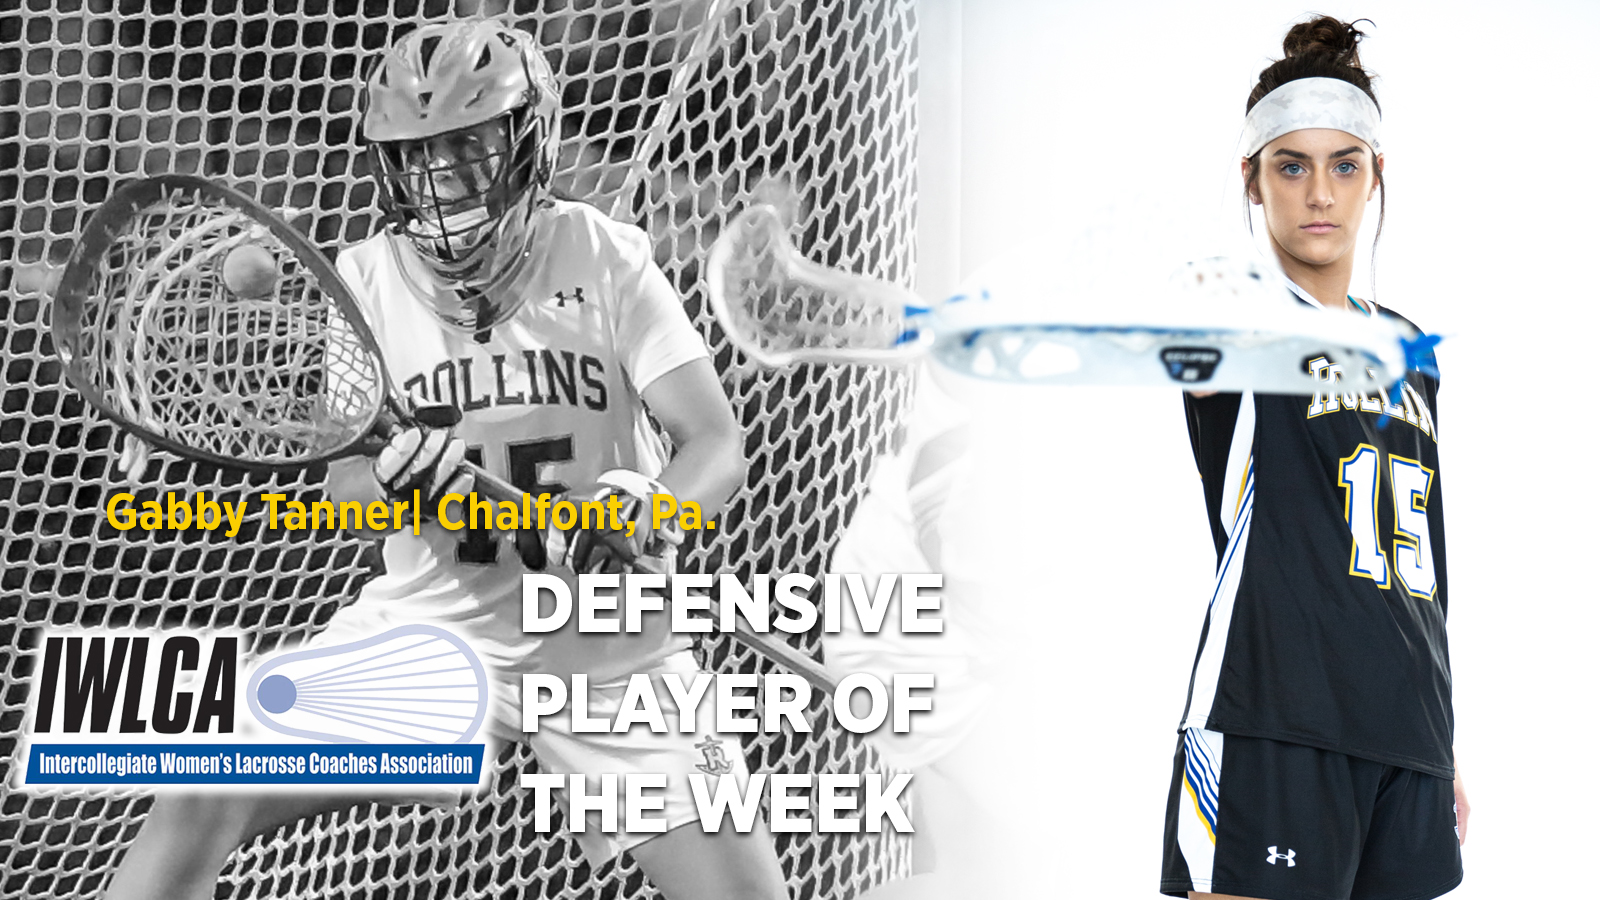 Tanner Named IWLCA Defensive Player of the Week